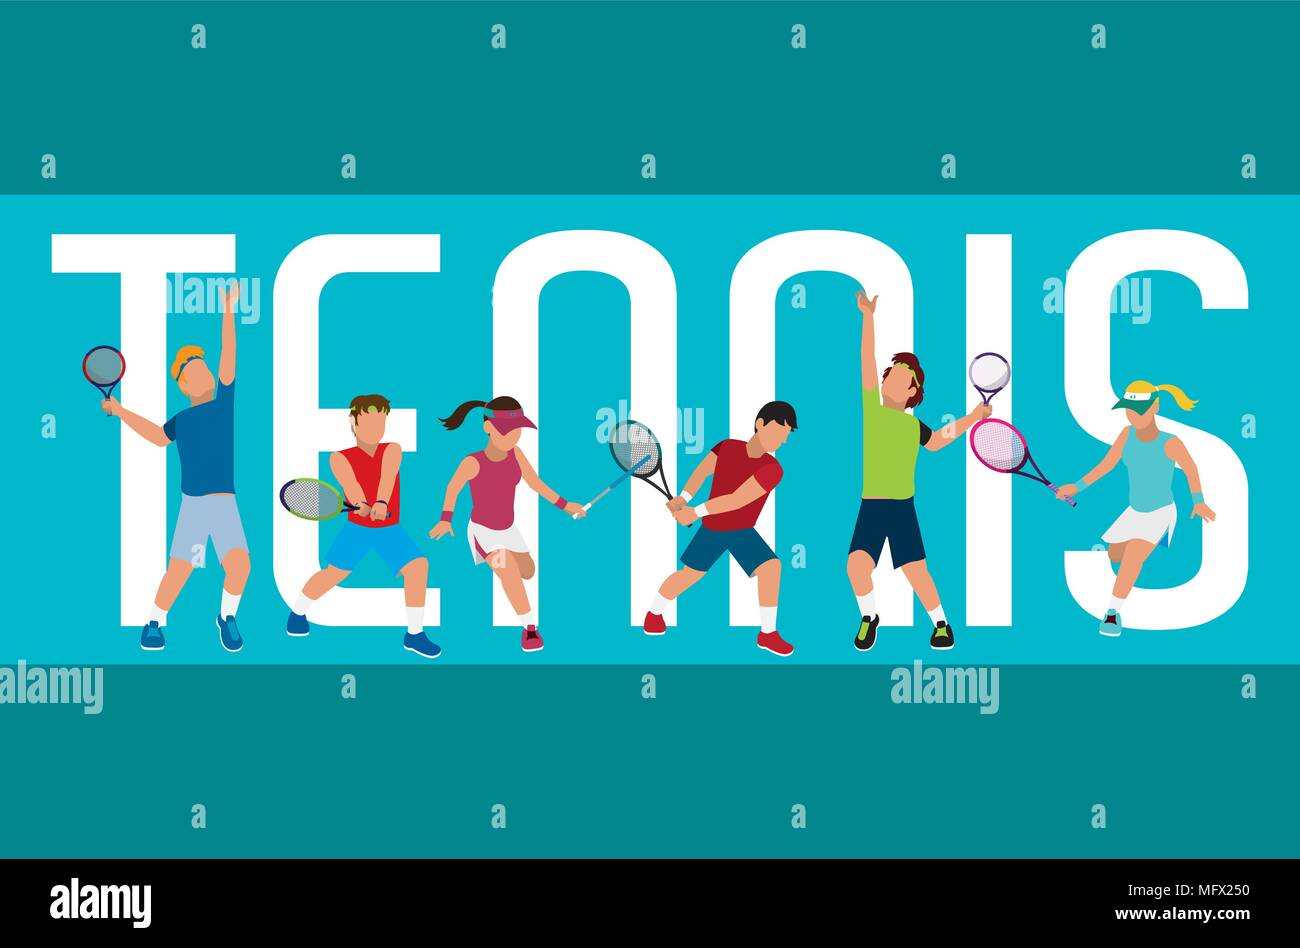 Tennis Banner With Players Stock Vector Image Art Alamy